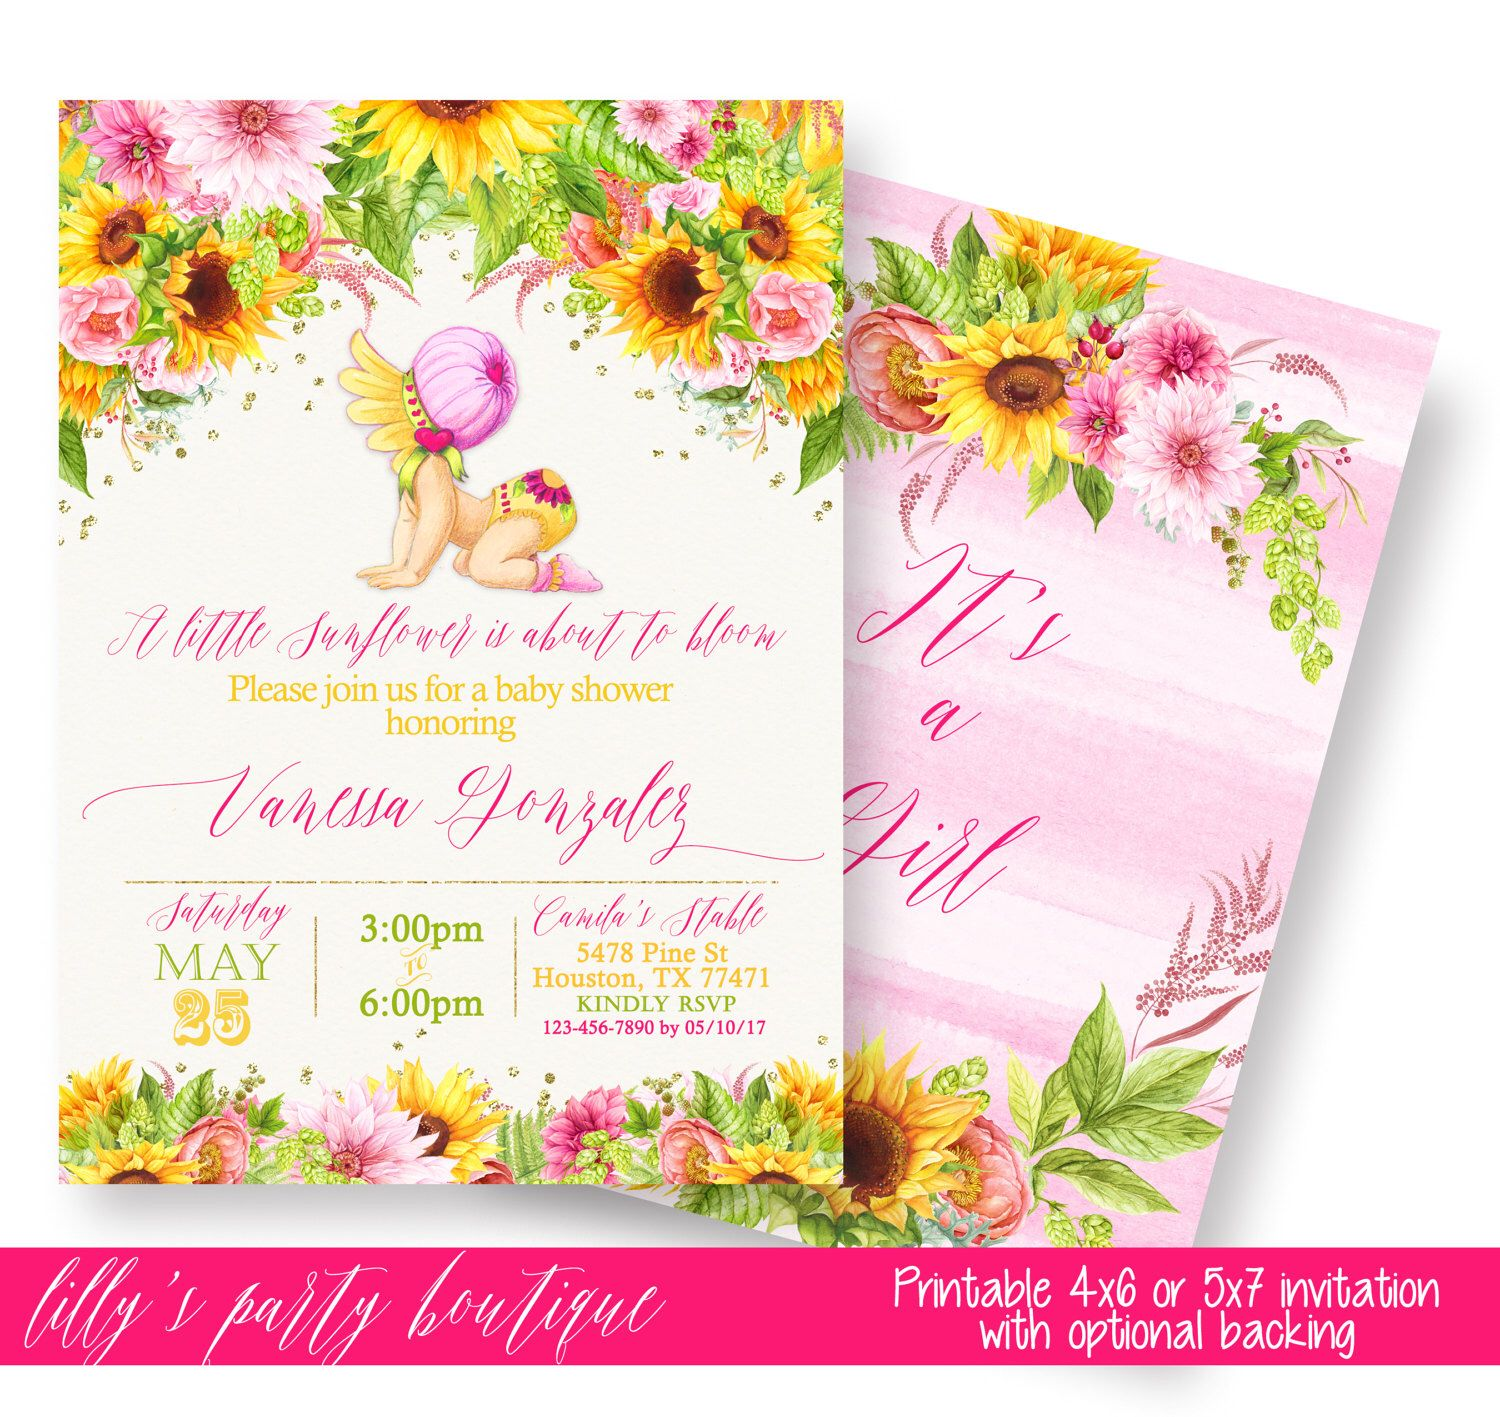 Sunflower baby shower invitation sunflower baby shower yello and sunflower baby shower invitation sunflower baby shower yello and pink sunflower baby shower invite sunflower baby you print by lillyspartyboutique on filmwisefo